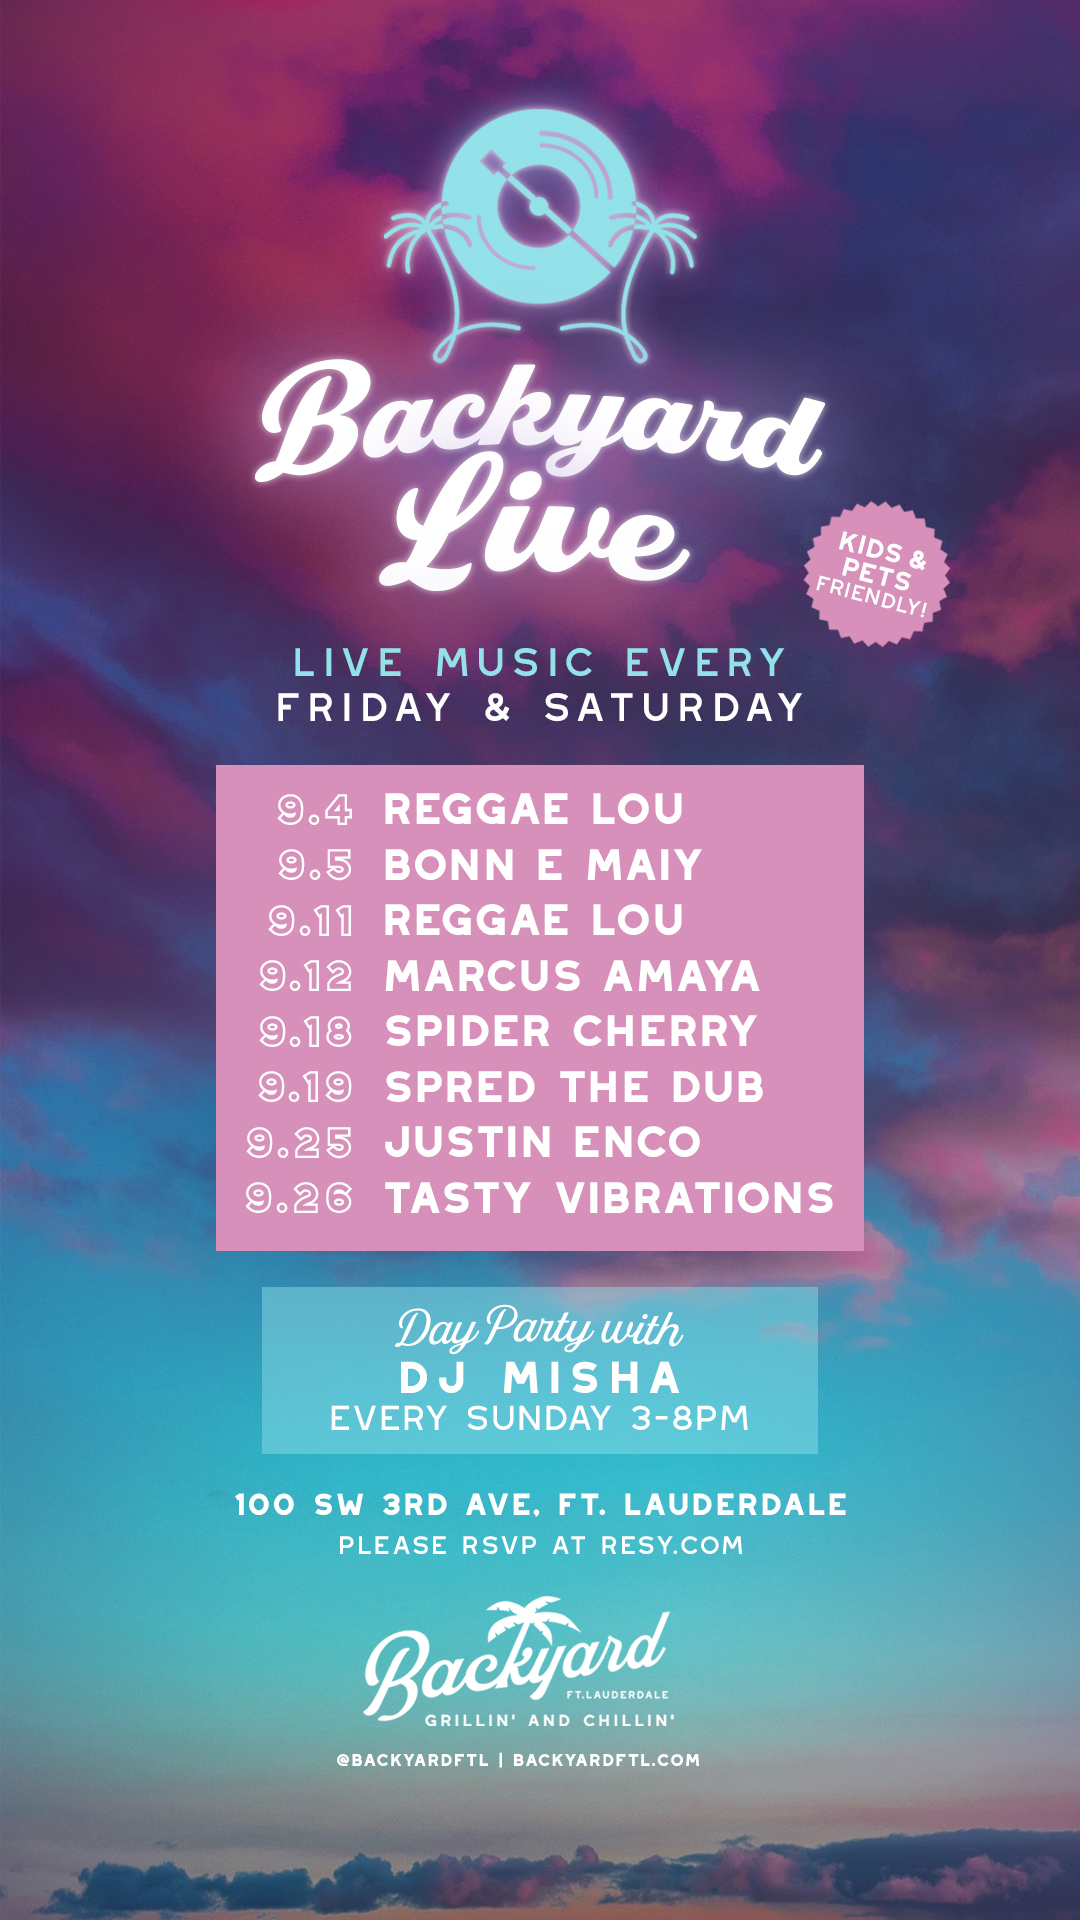 Schedule of Live Music for September 2020 at Backyard